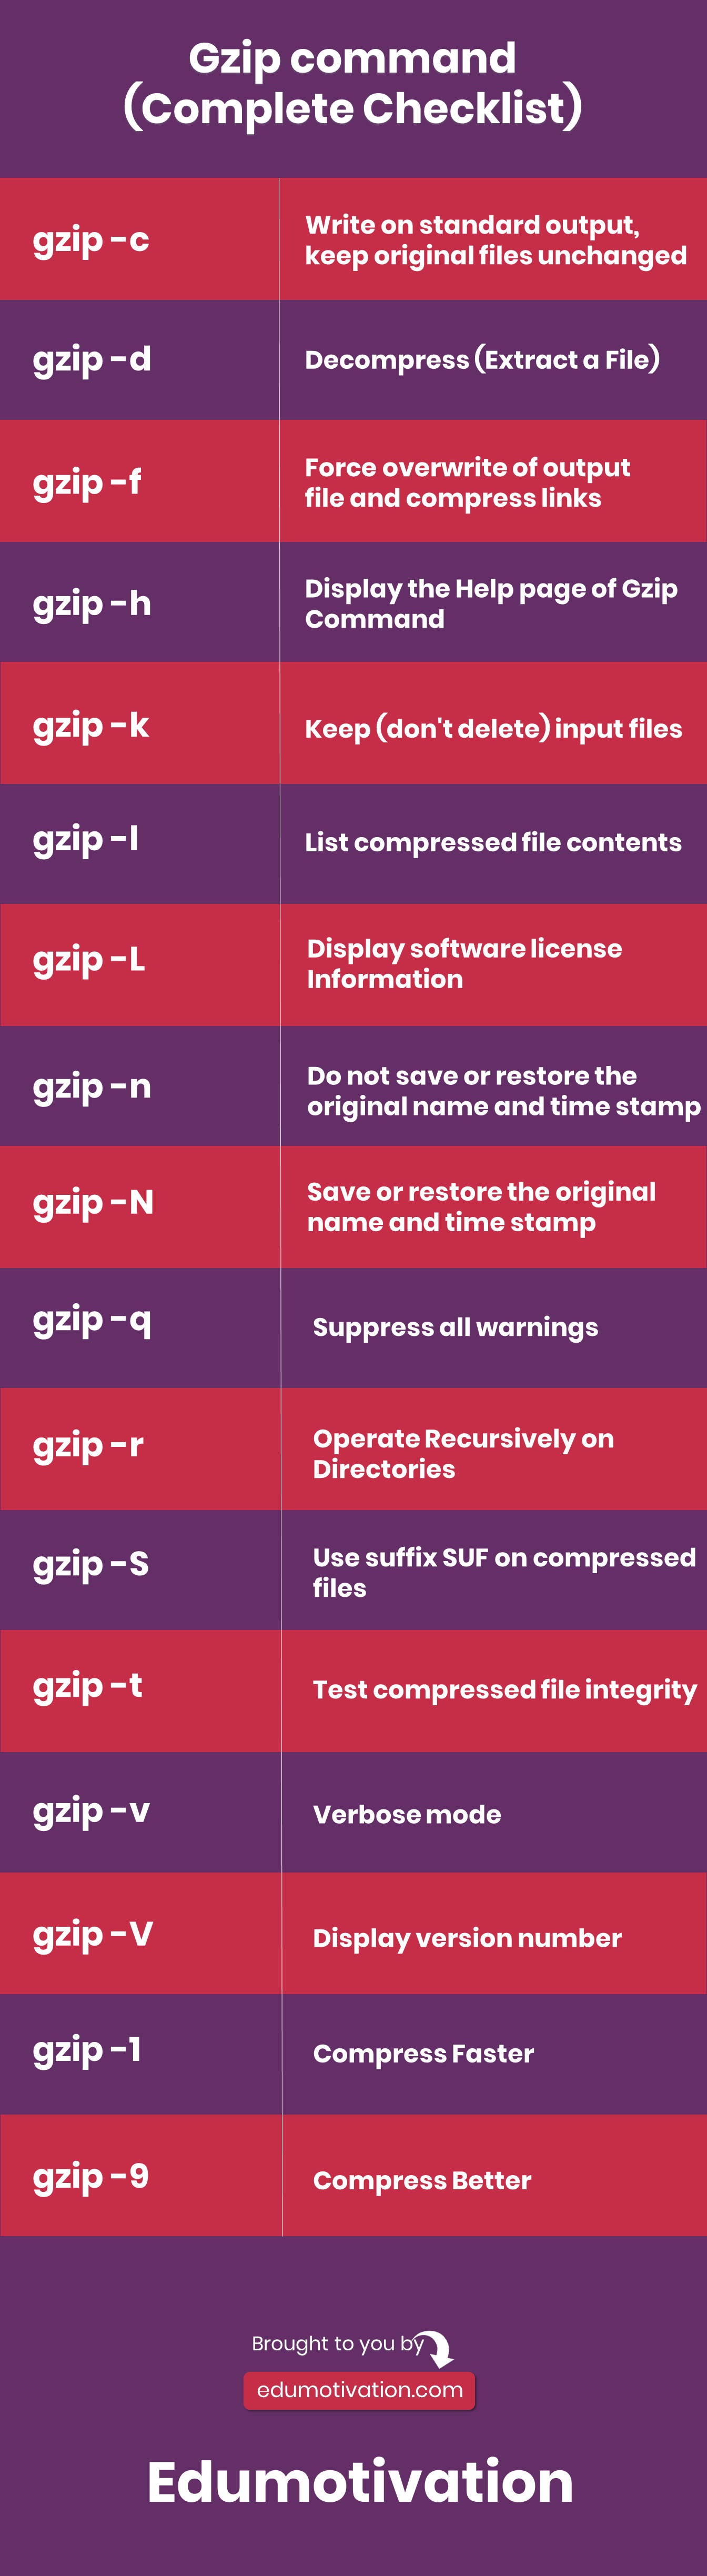 Gzip Command Infographic